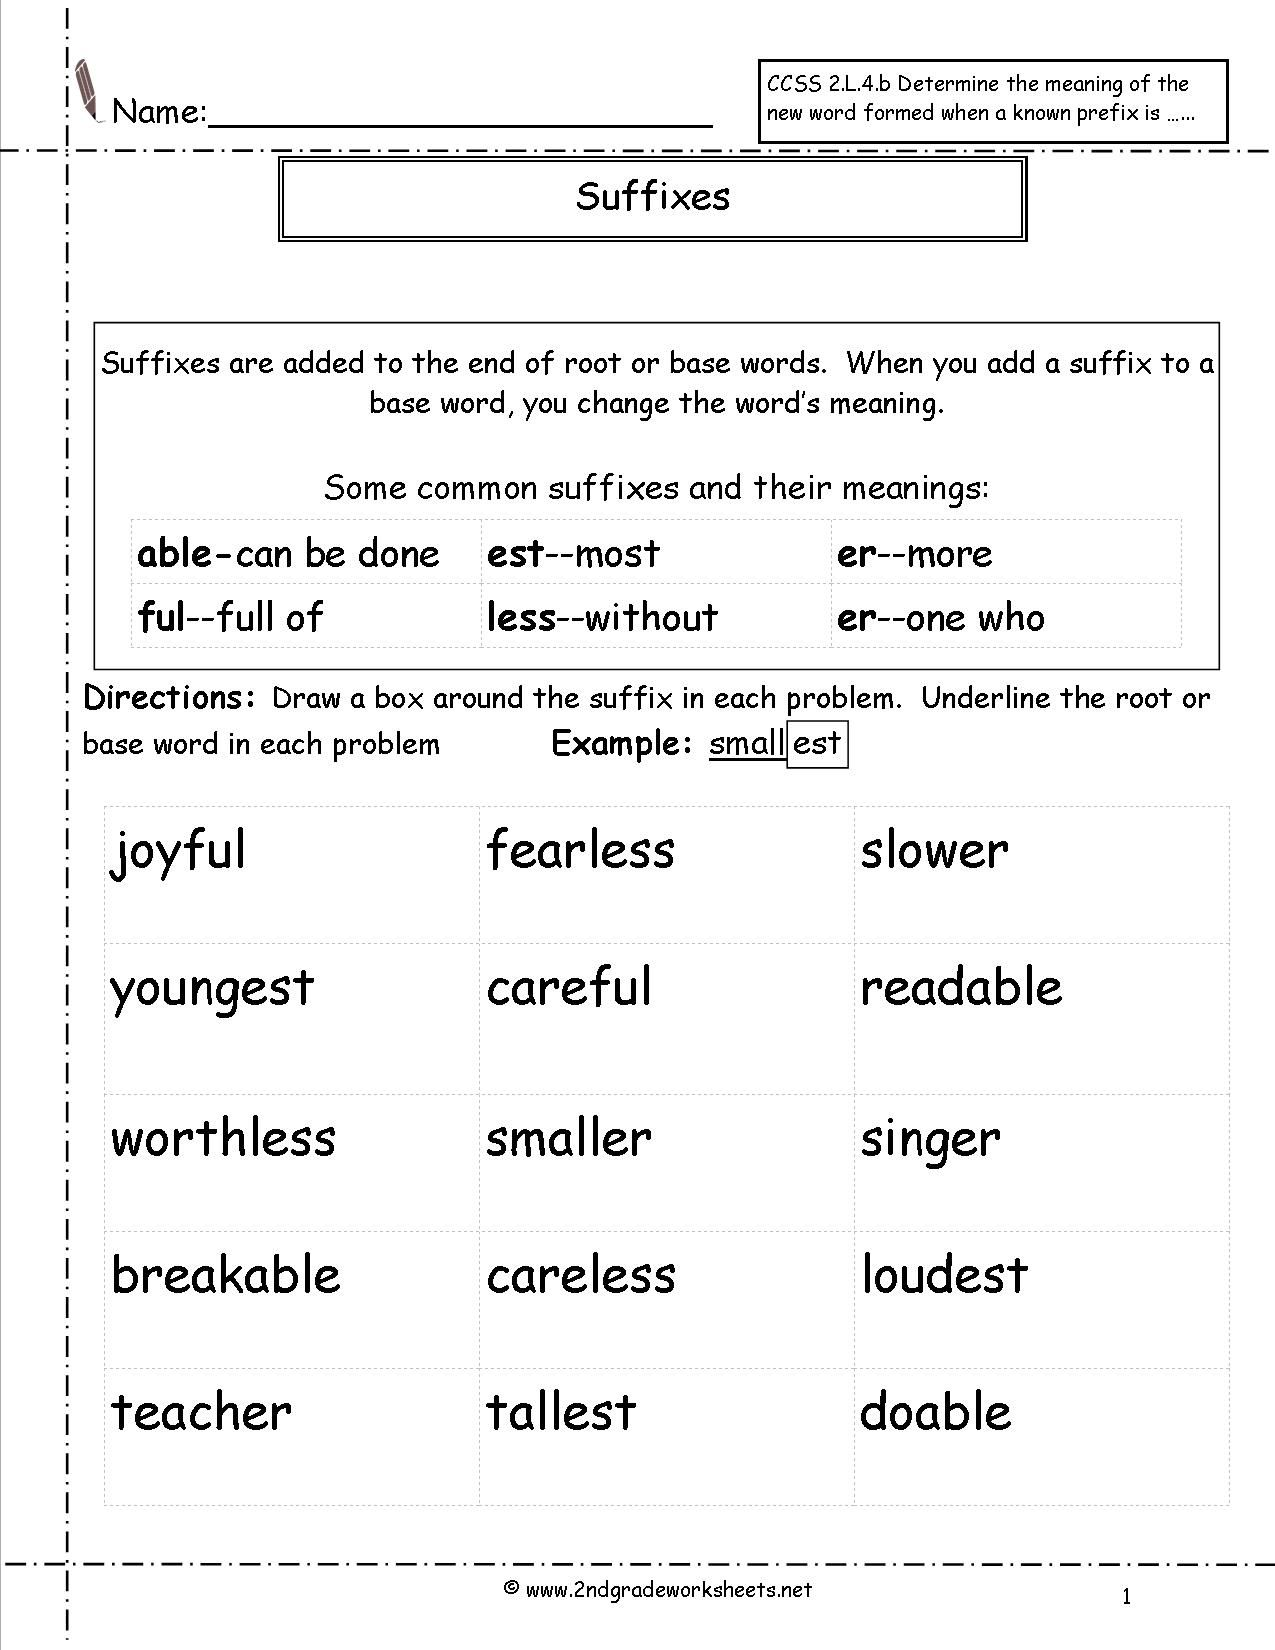 41 Innovative Prefix Worksheets For You With Images